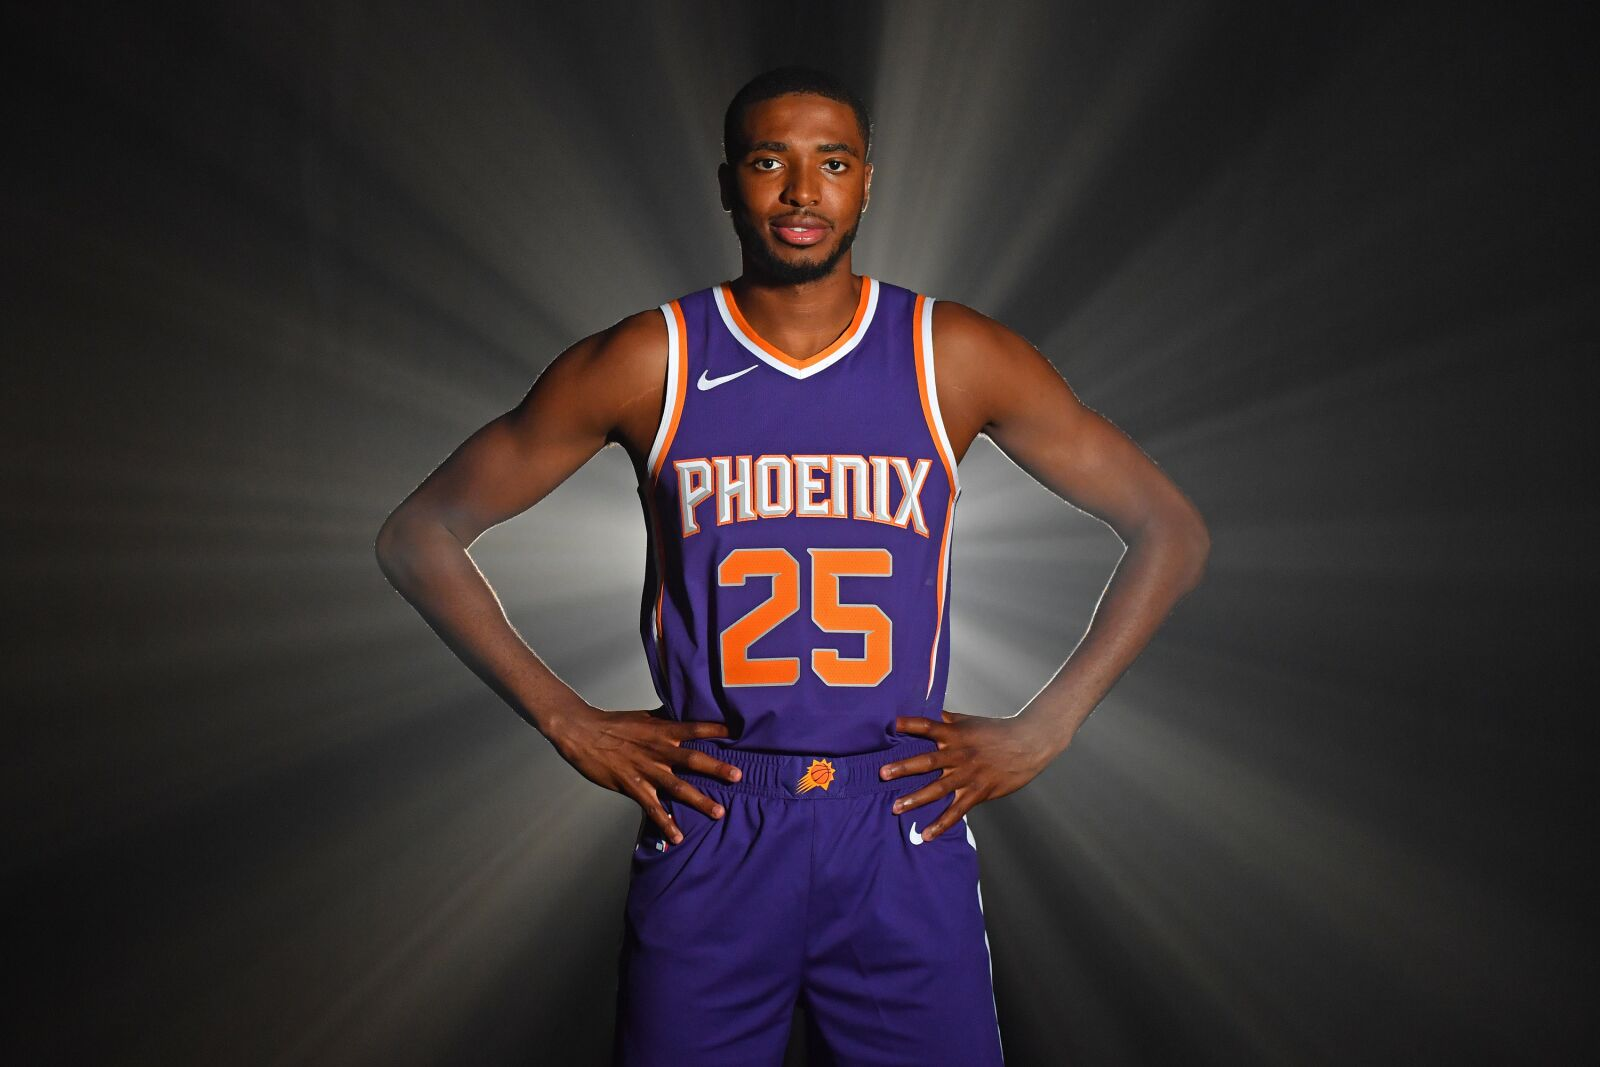 outlet store cf86c 65ad3 Is Phoenix Suns rookie Mikal Bridges overlooked - Valley of ...